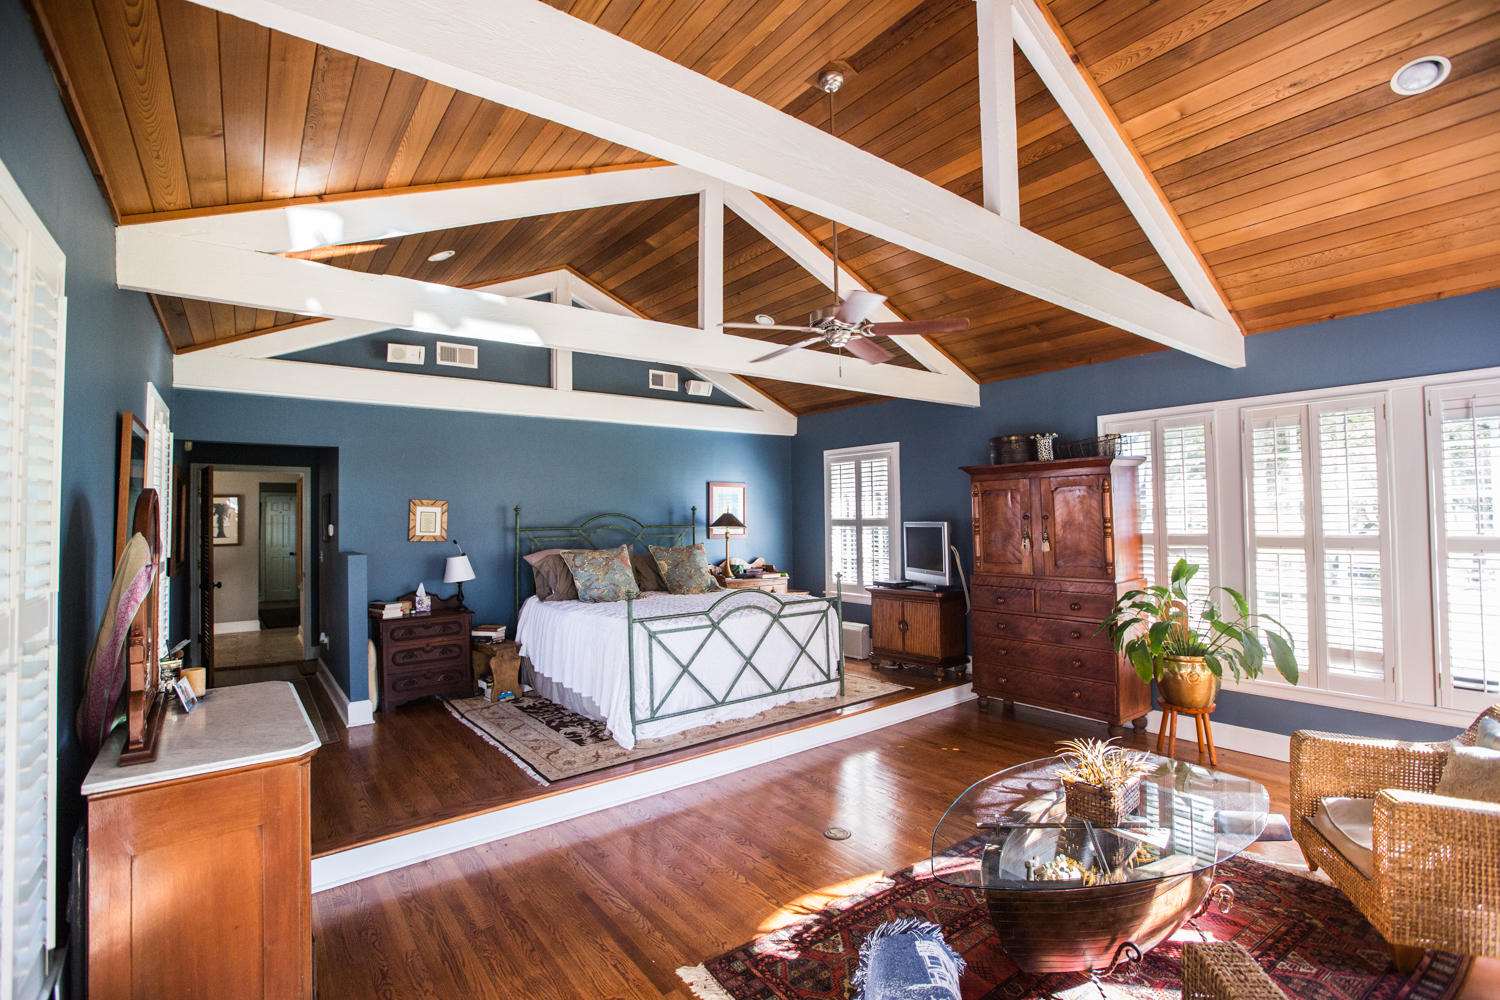 Edgewater Park Homes For Sale - 120 Edgewater, Charleston, SC - 24